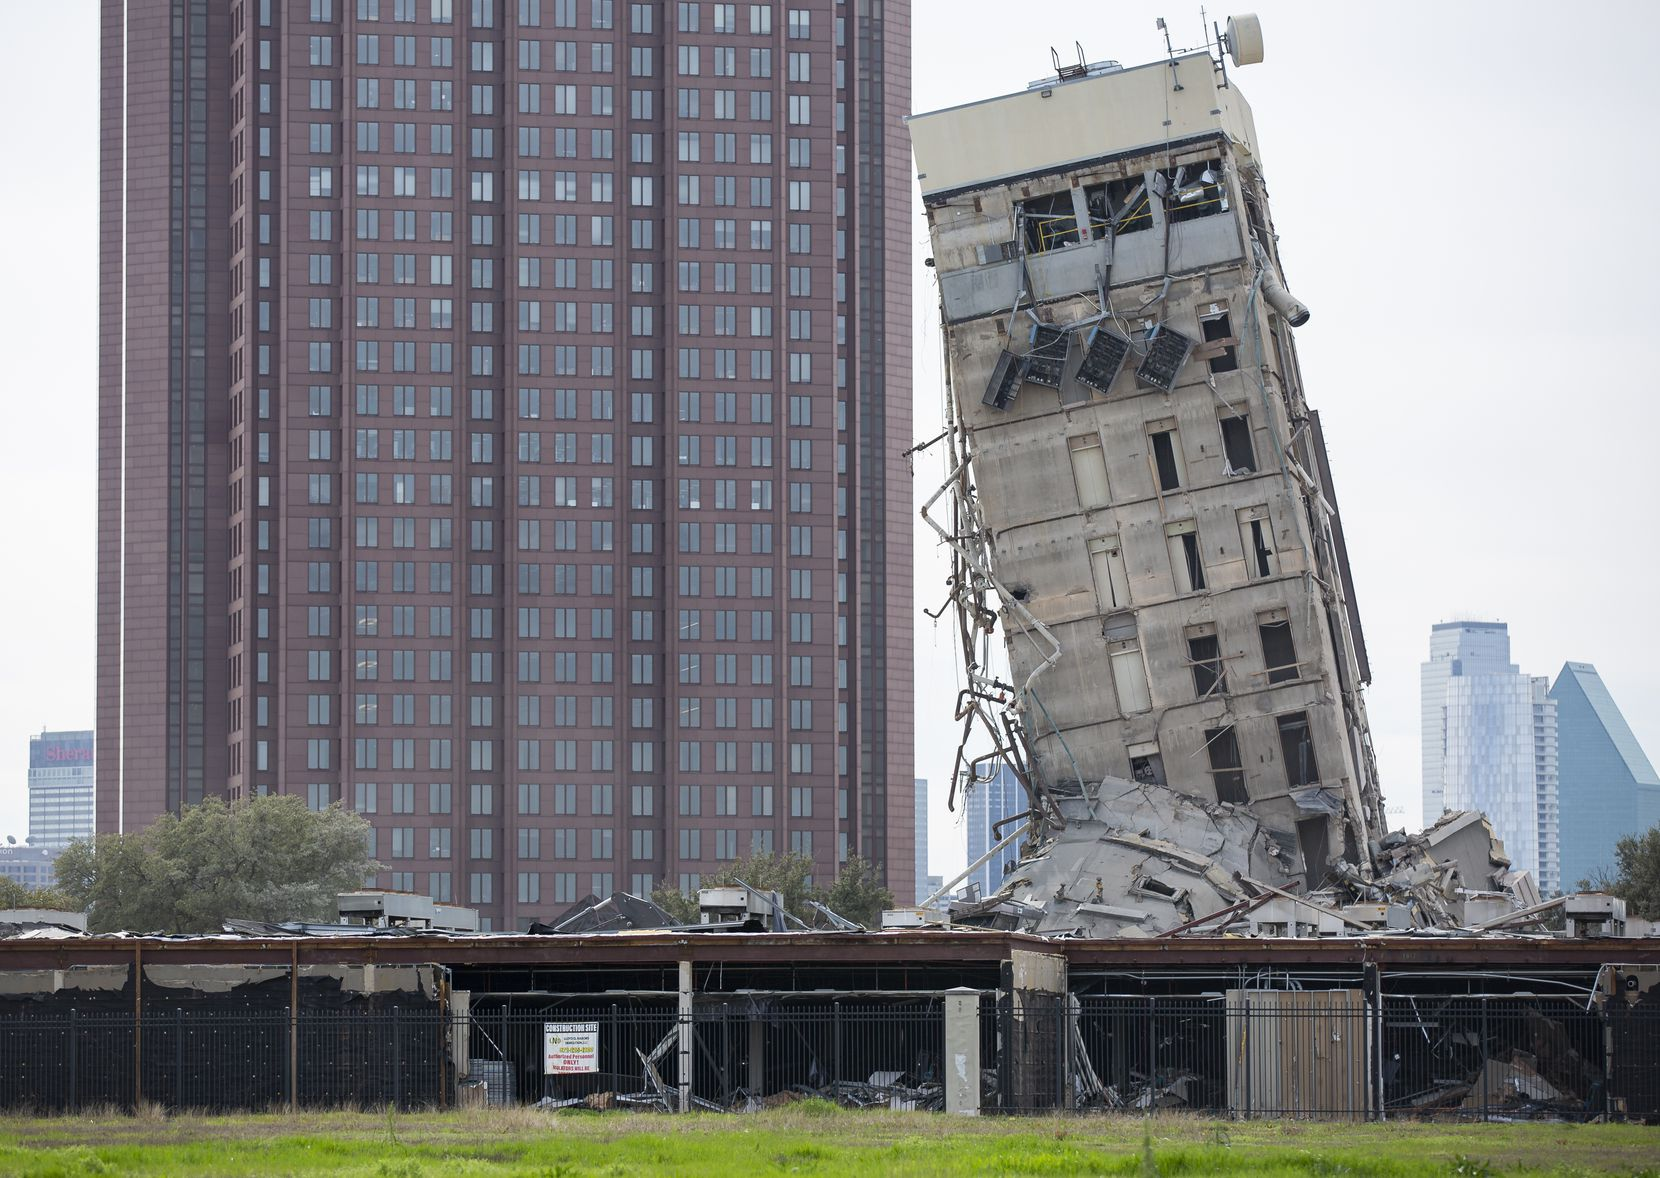 The former Affiliated Computer Services tower core shaft remains standing on Feb. 17, 2020 in Dallas. A demolition on Sunday morning left the single tower behind.